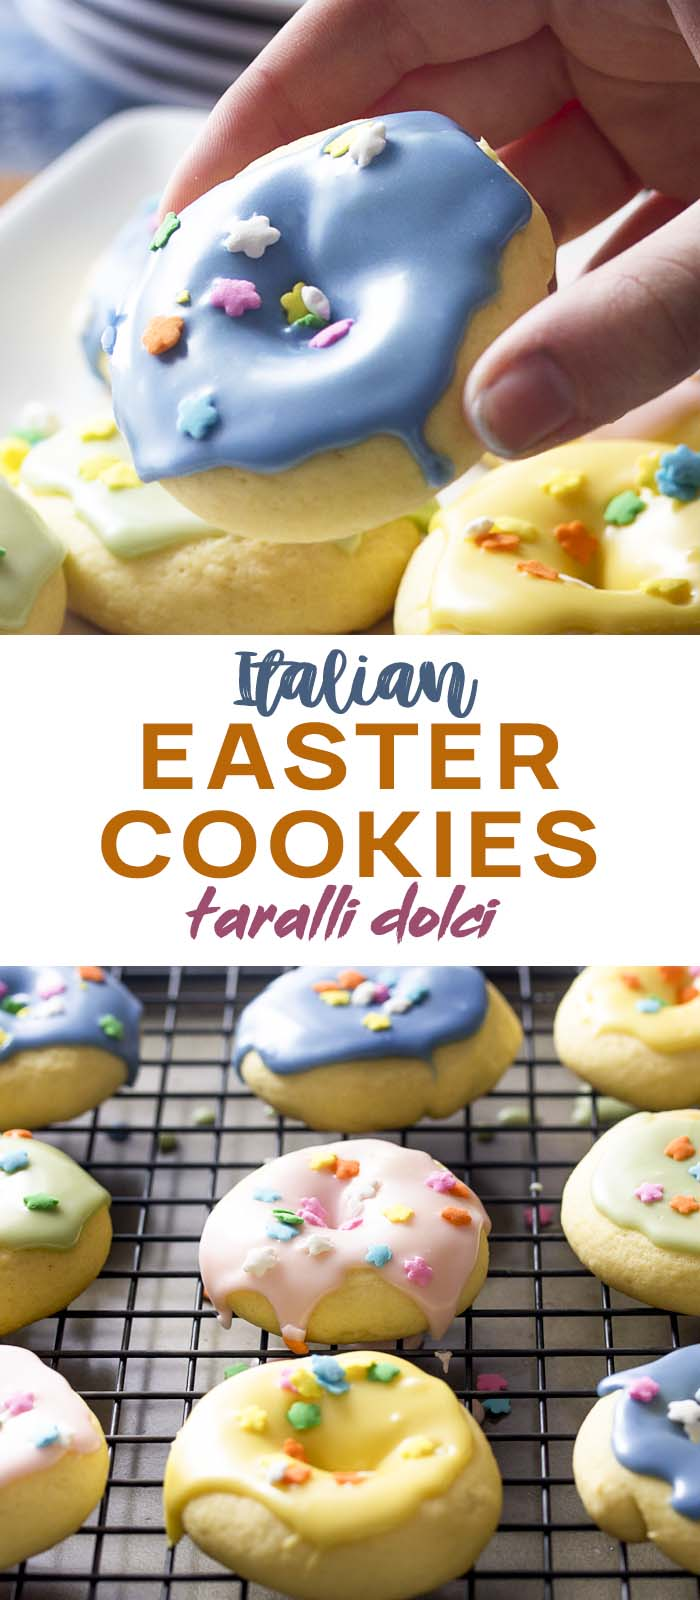 Hand holding up one cookie over a tray of others with text overlay - Italian Easter Cookies.